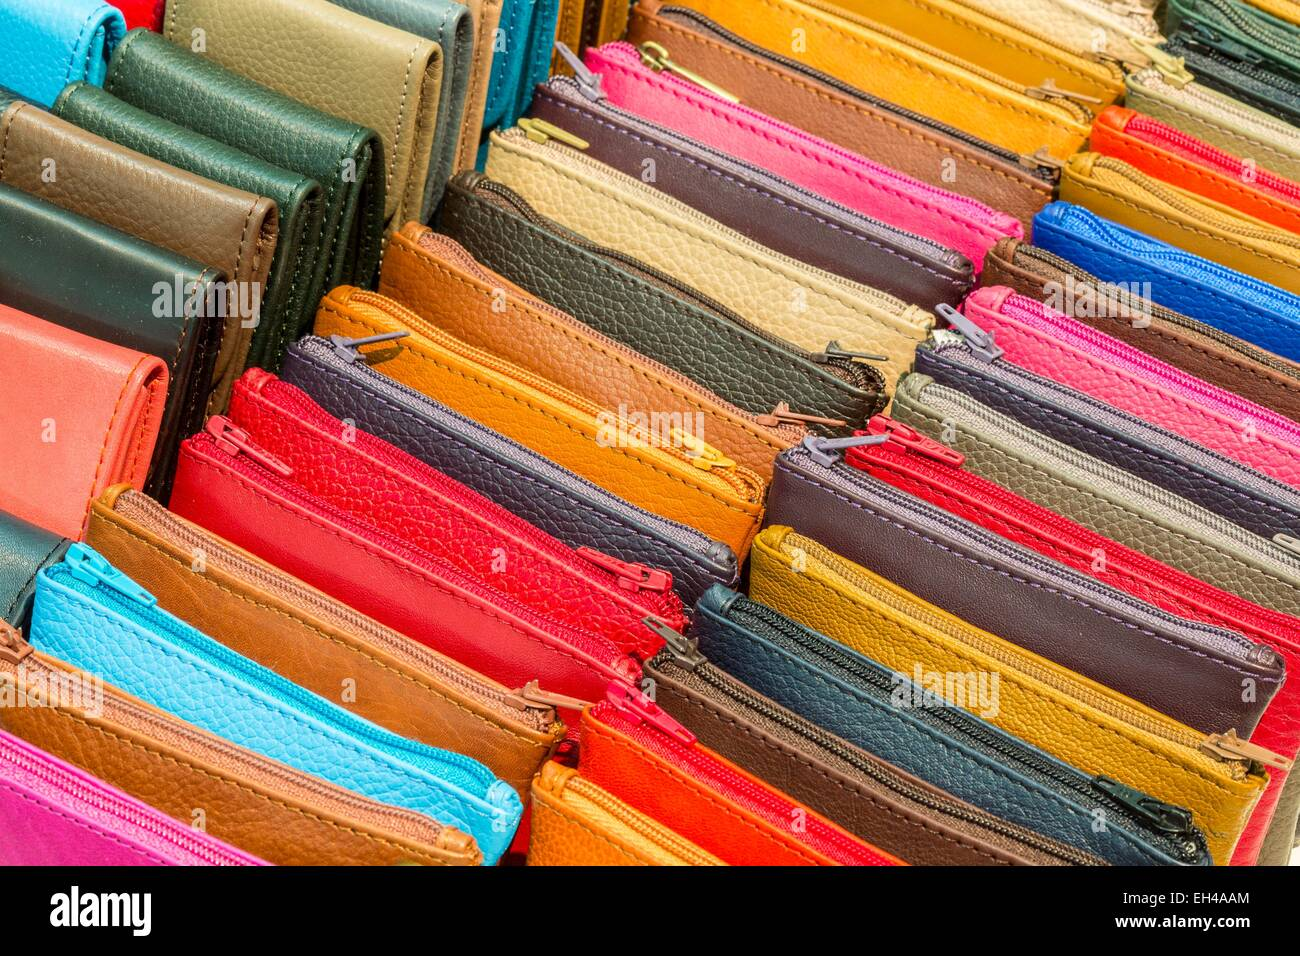 Morocco, High Atlas, Marrakech, imperial city Gueliz, boutique brand Gallery Tanners, leather purses manufactured - Stock Image